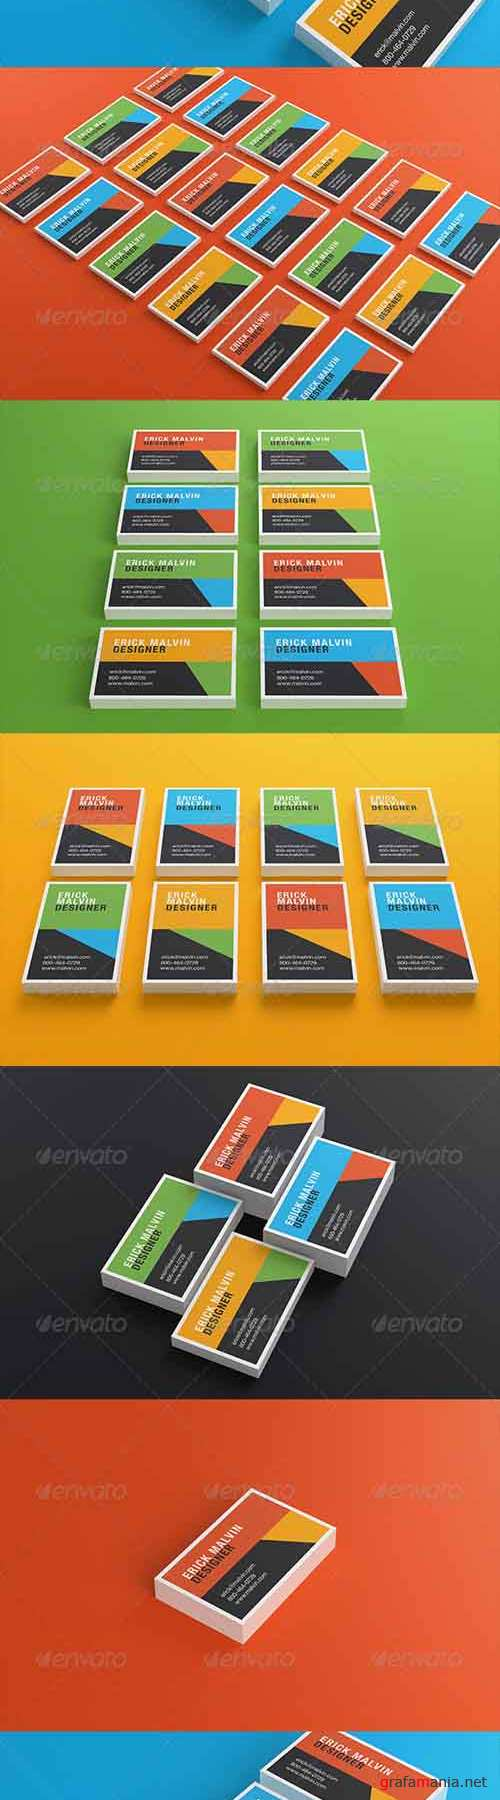 Business Cards Mock-up [8.5x5.5 cm] 5587269